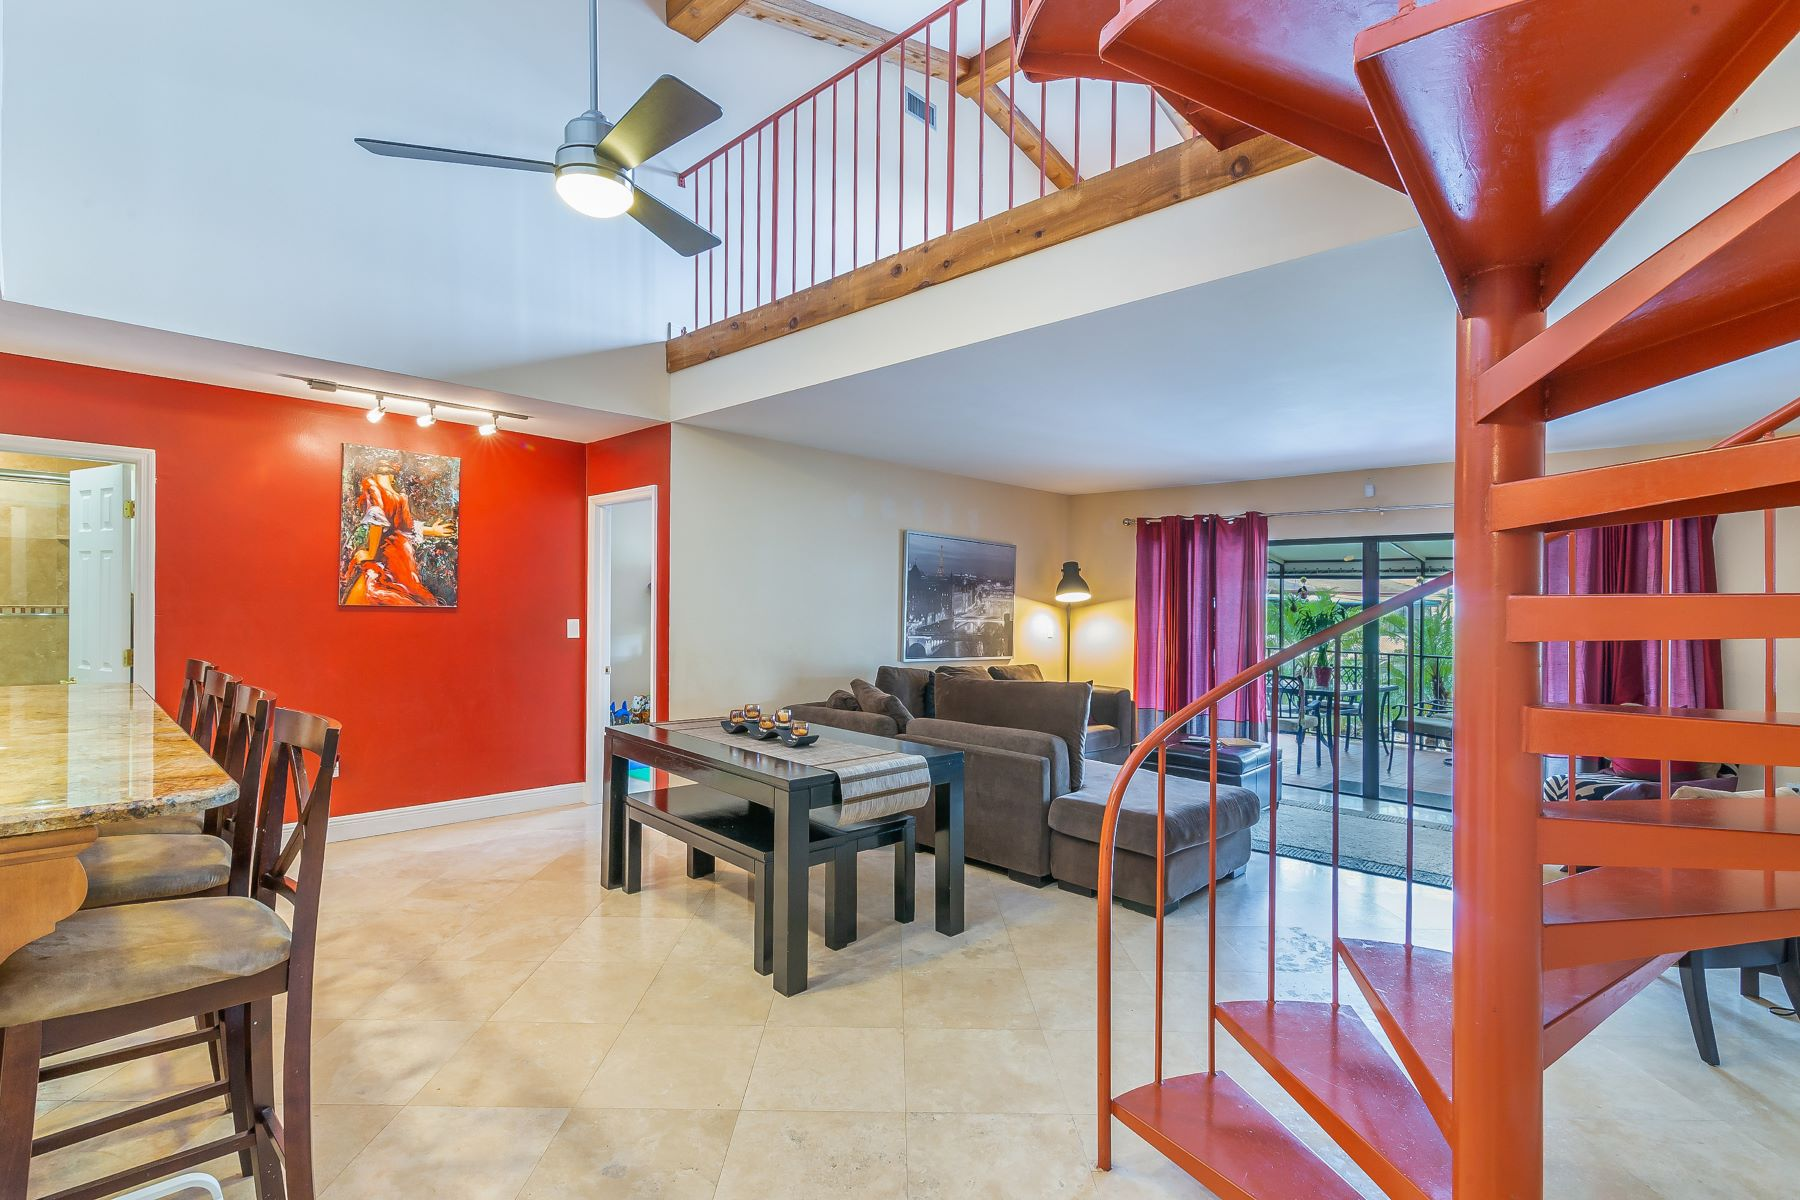 Townhouse for Sale at 7029 S Loch Isle Dr S 7029 S Loch Isle Dr S 7029 Miami Lakes, Florida 33014 United States